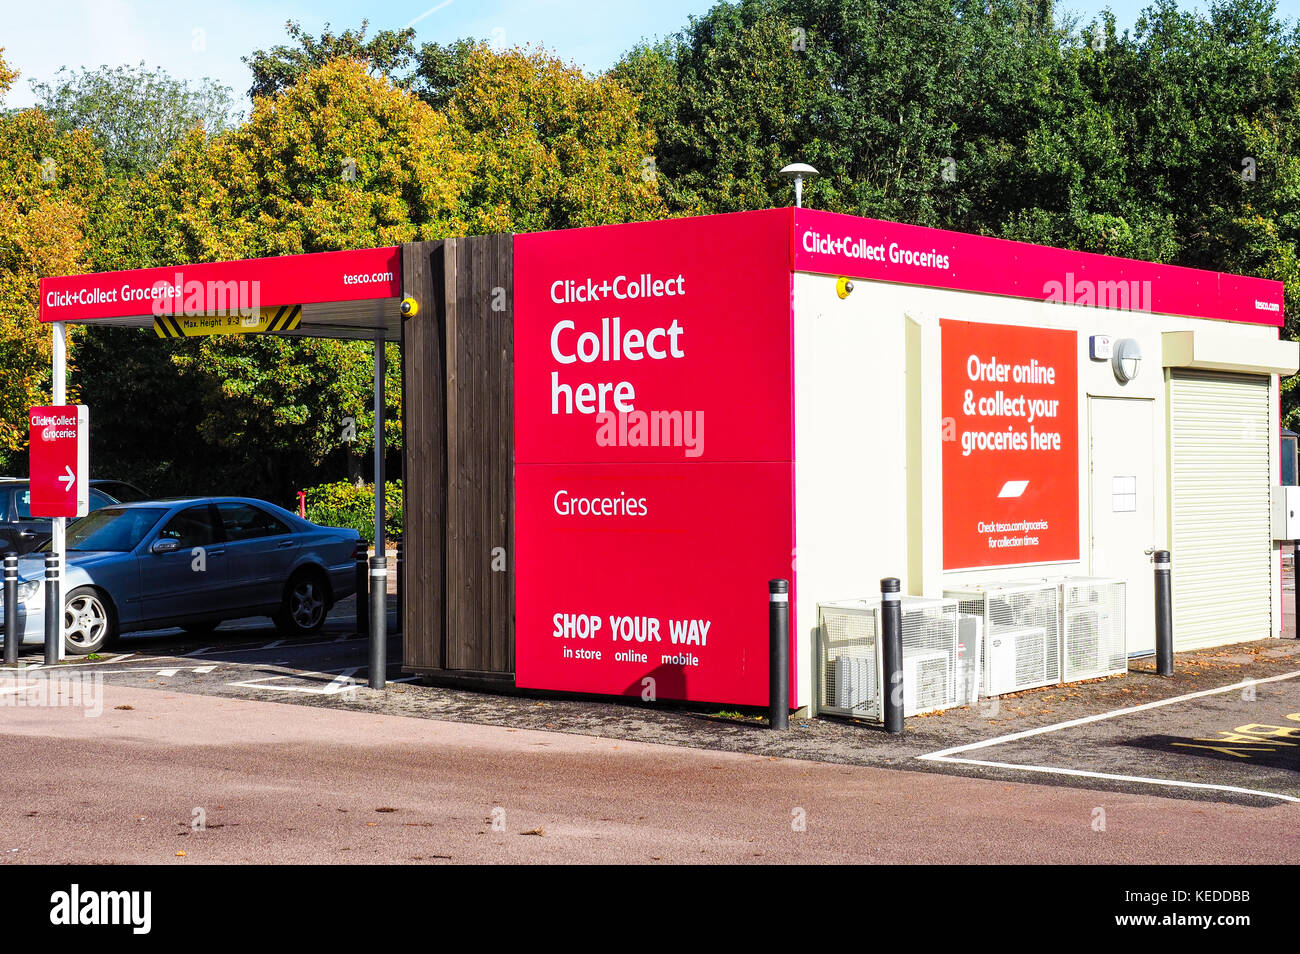 tesco click and collect stock photos tesco click and collect stock images alamy. Black Bedroom Furniture Sets. Home Design Ideas